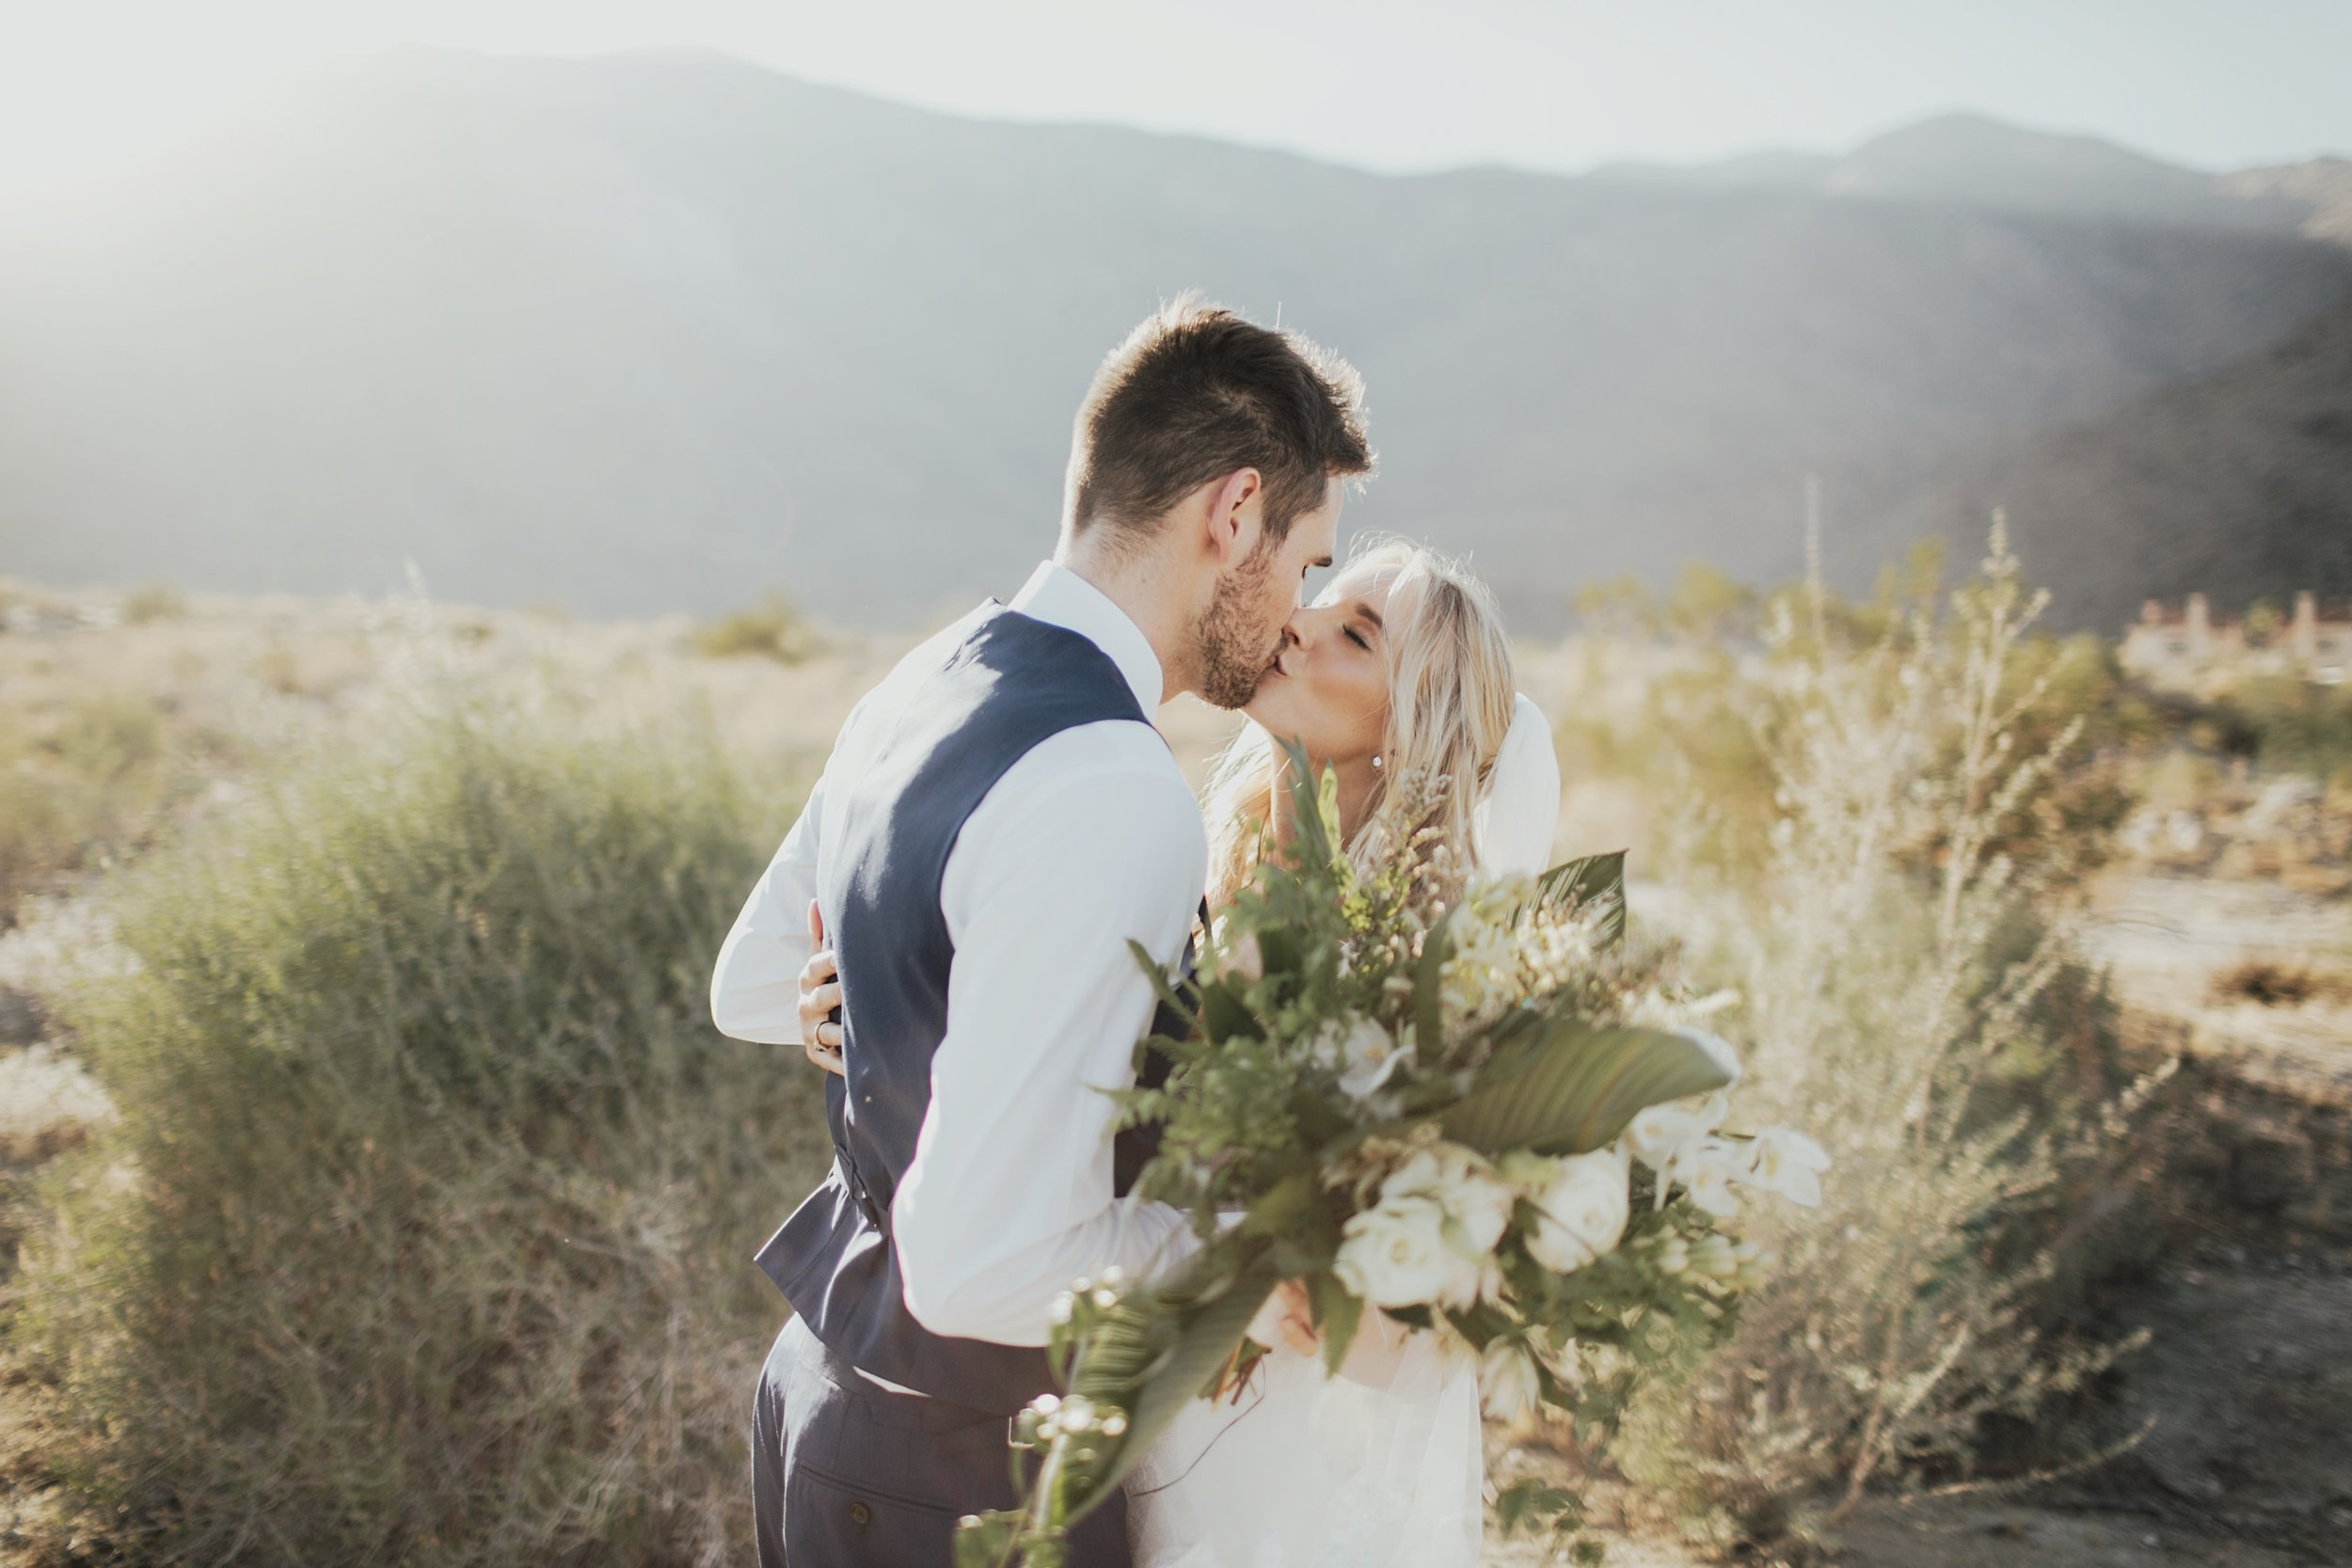 portrait wedding photography in palm springs